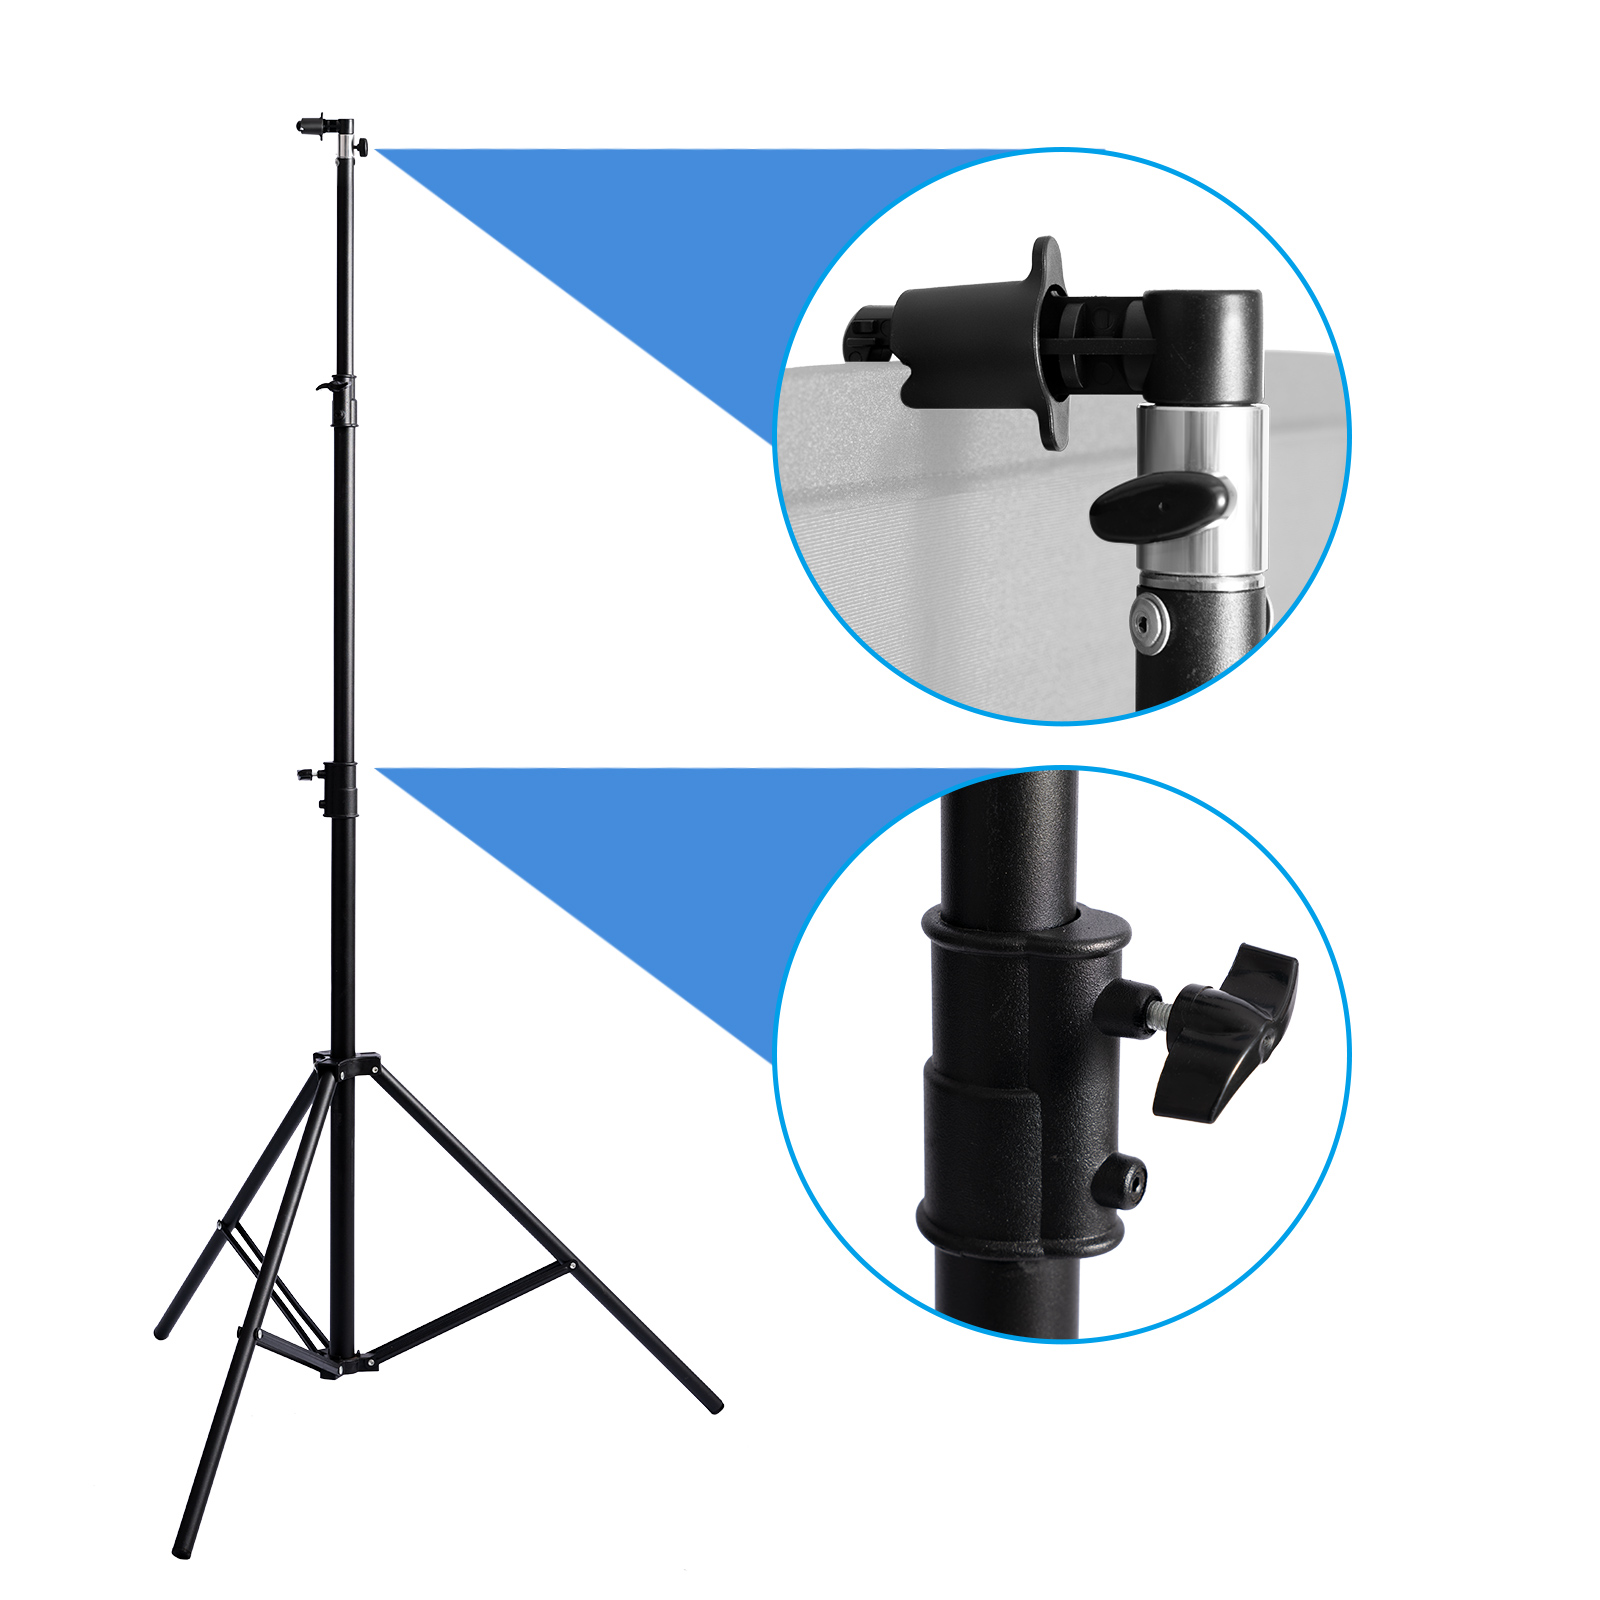 Professional Photography Light Stand Adjustable Tripod with clip For Reflector Backdrop Video Photo Youtube Studio kit